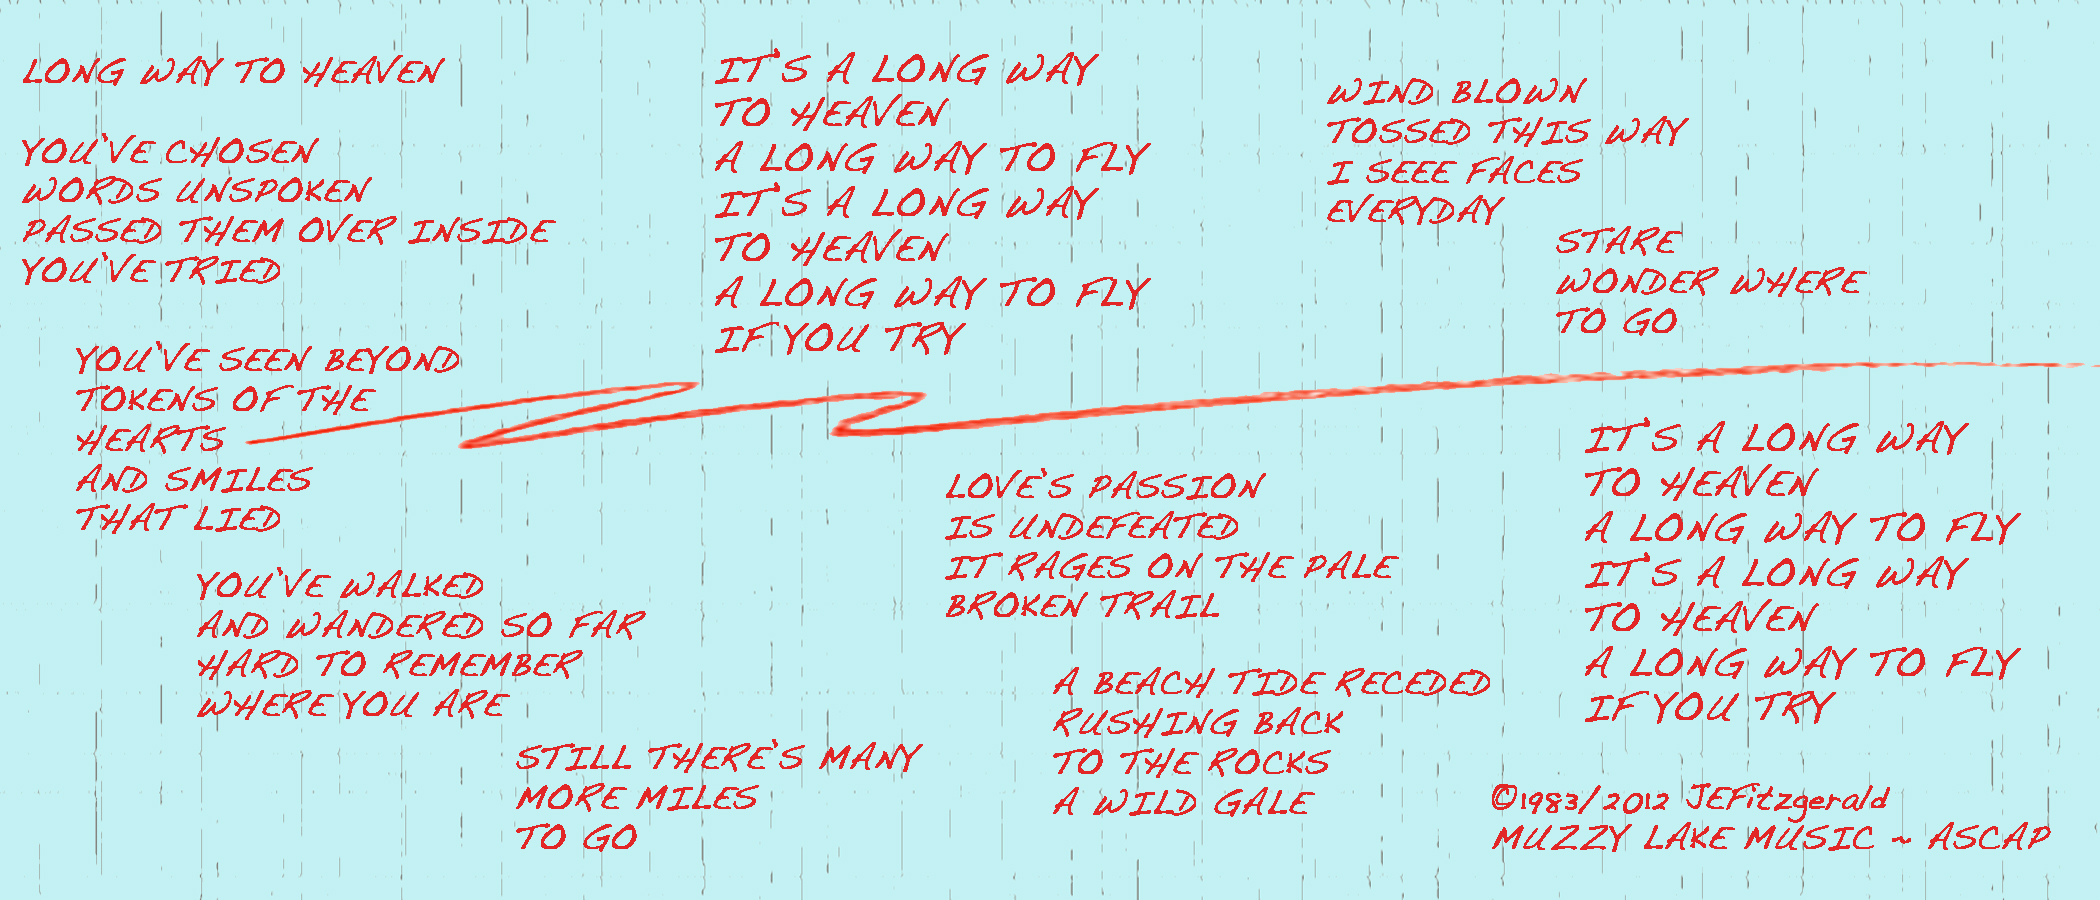 lyric block-horizontal-long way to heaven.jpg